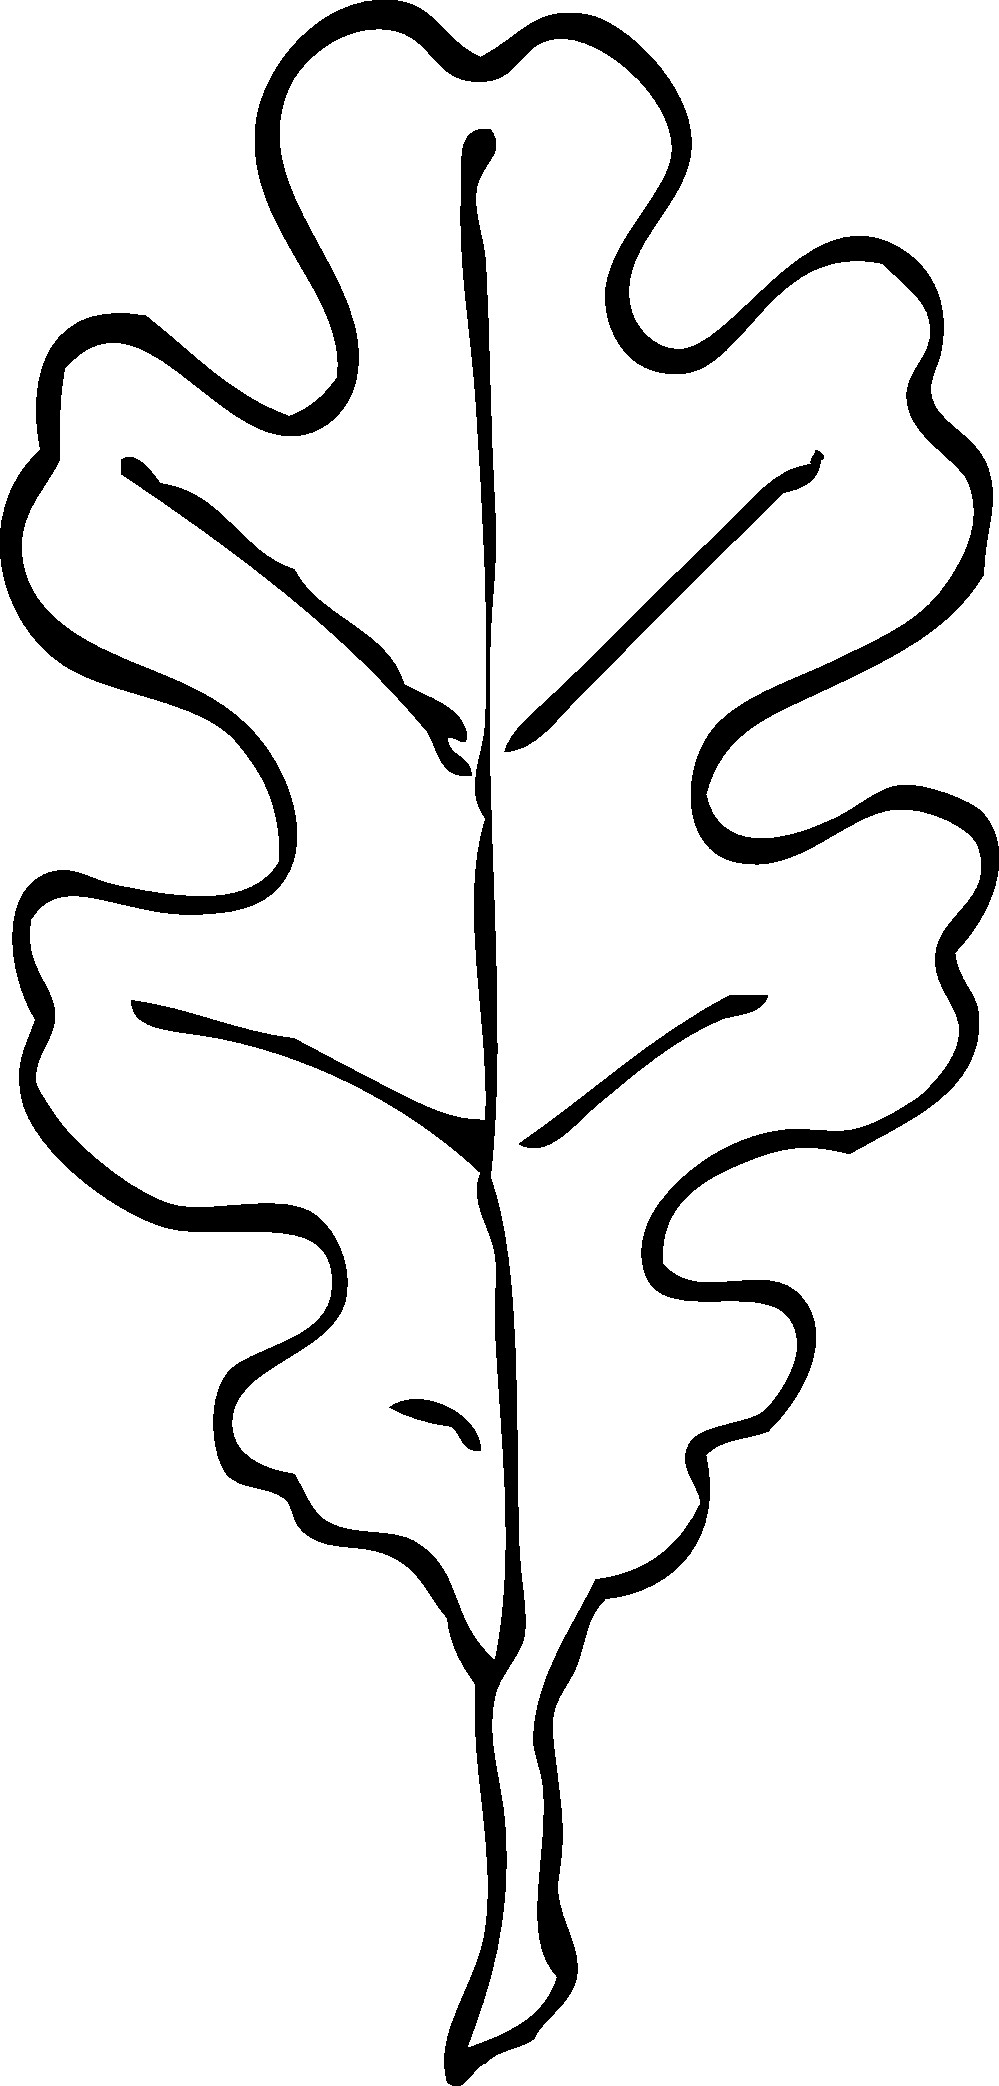 999x2086 Oak Leaf Nature Coloring Page For Kids Beautiful Leaf Outlines